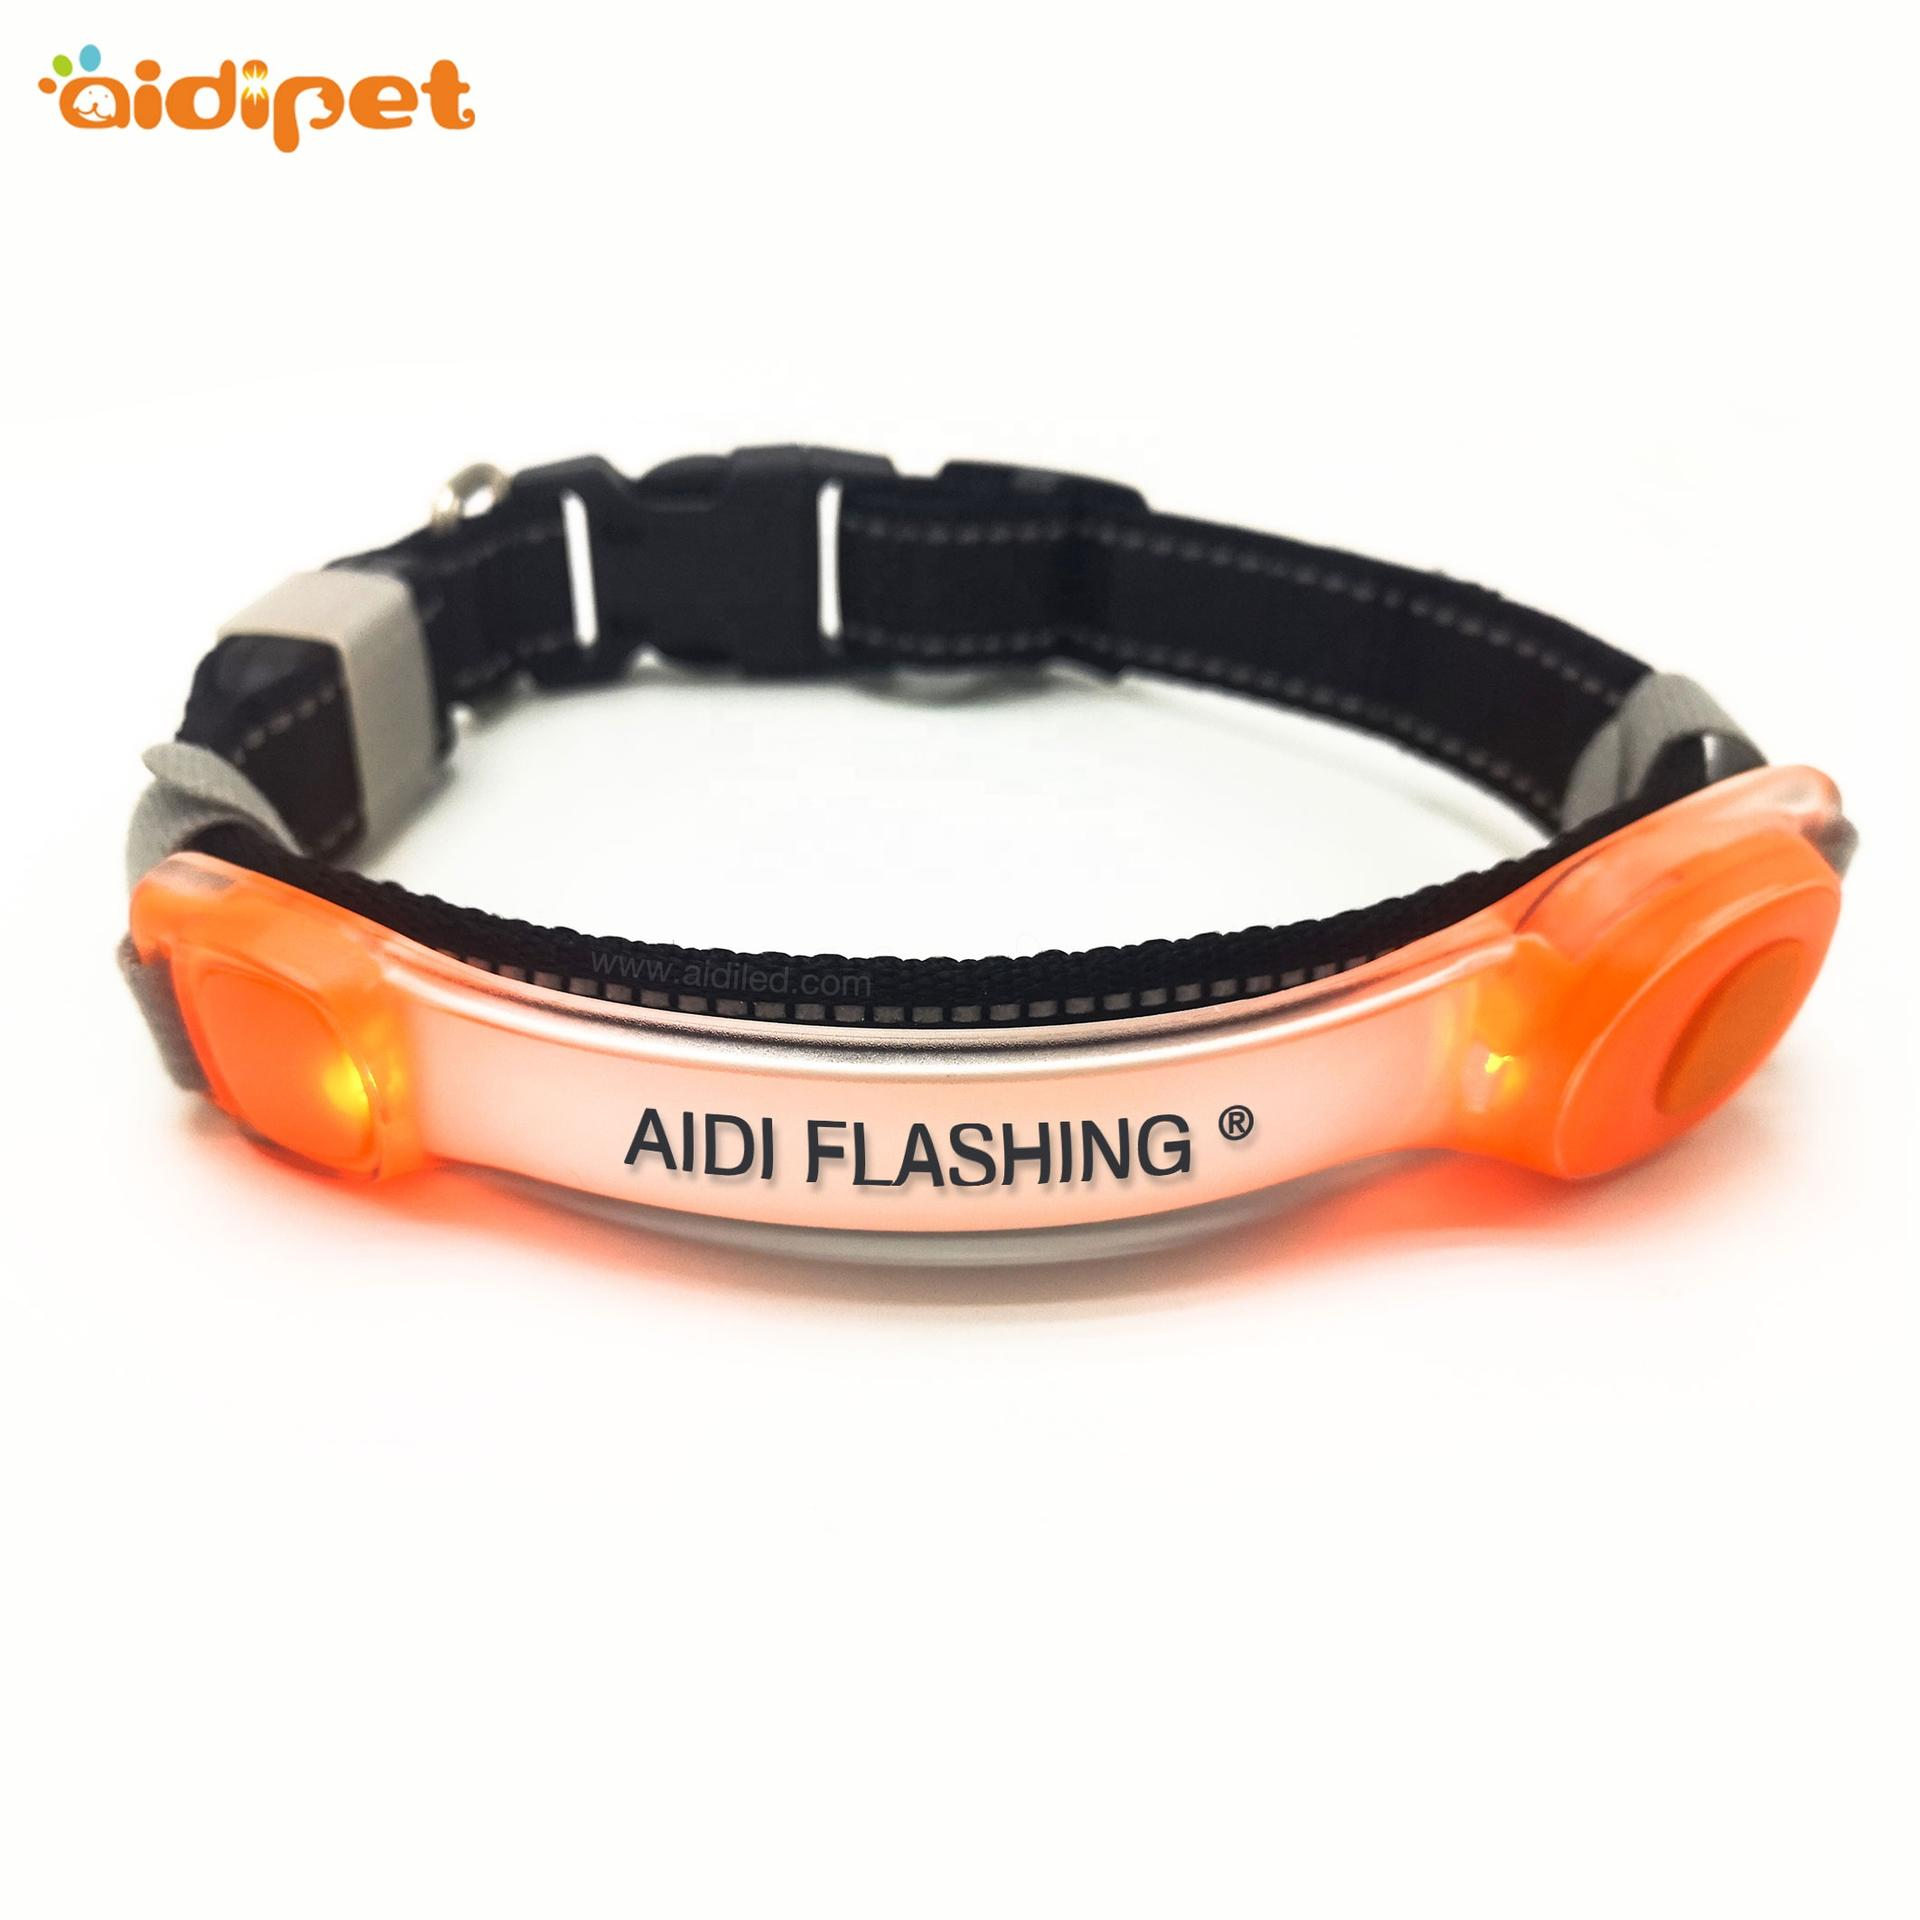 LED TPU Glow In the Dark Dog Collar Accessory Light Up AIDI Flashing Pet Collar for Dog Night Safety